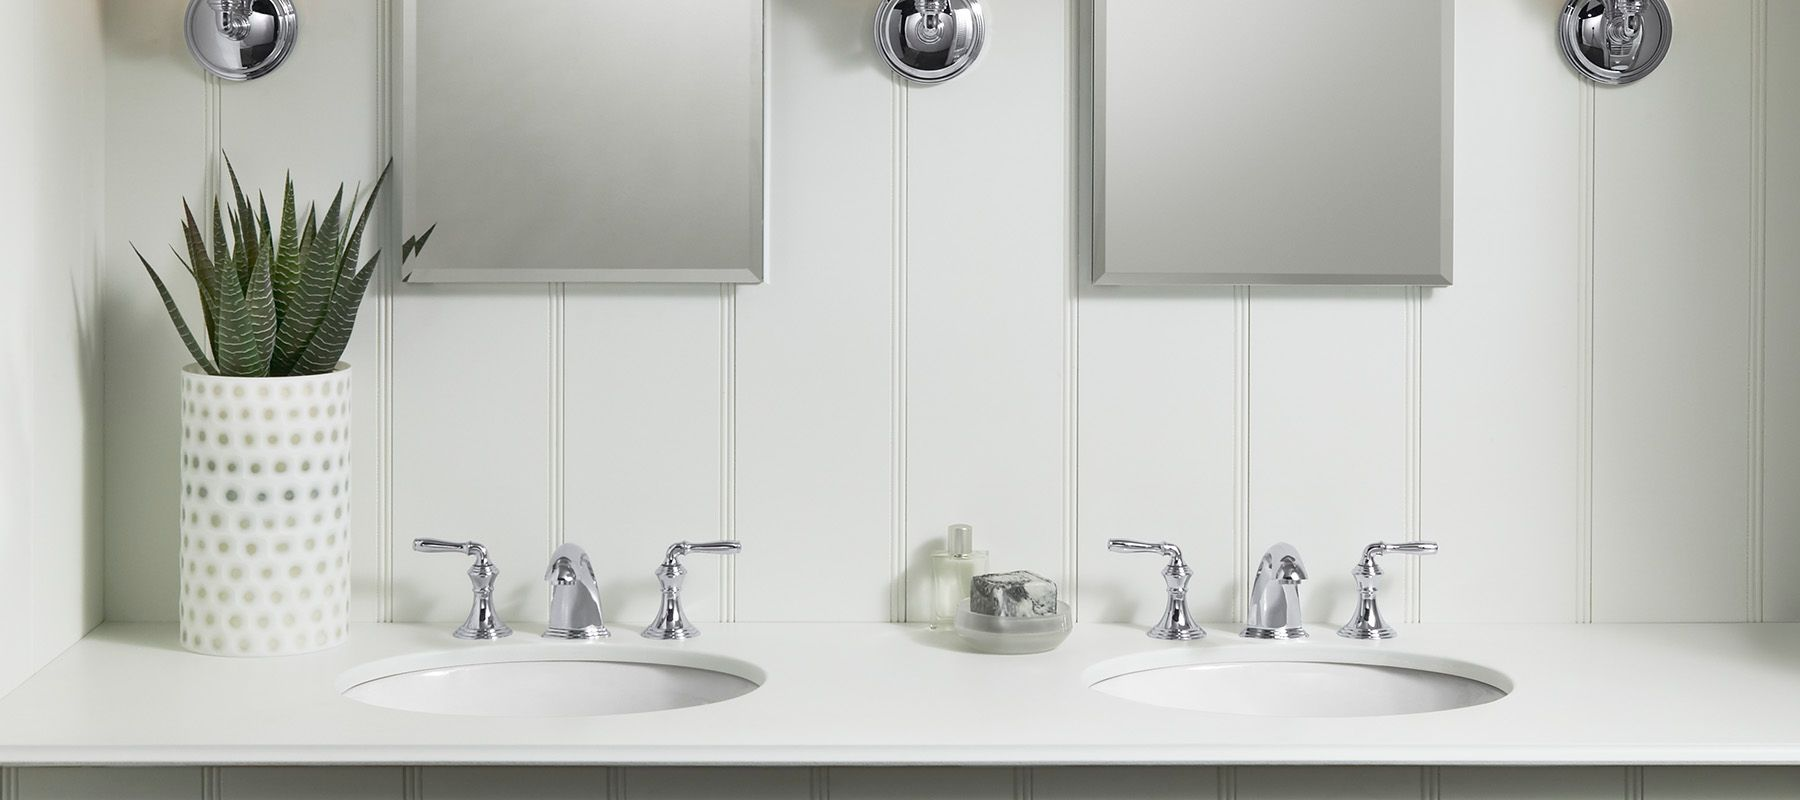 Merveilleux Bathroom Sinks Buying Guide